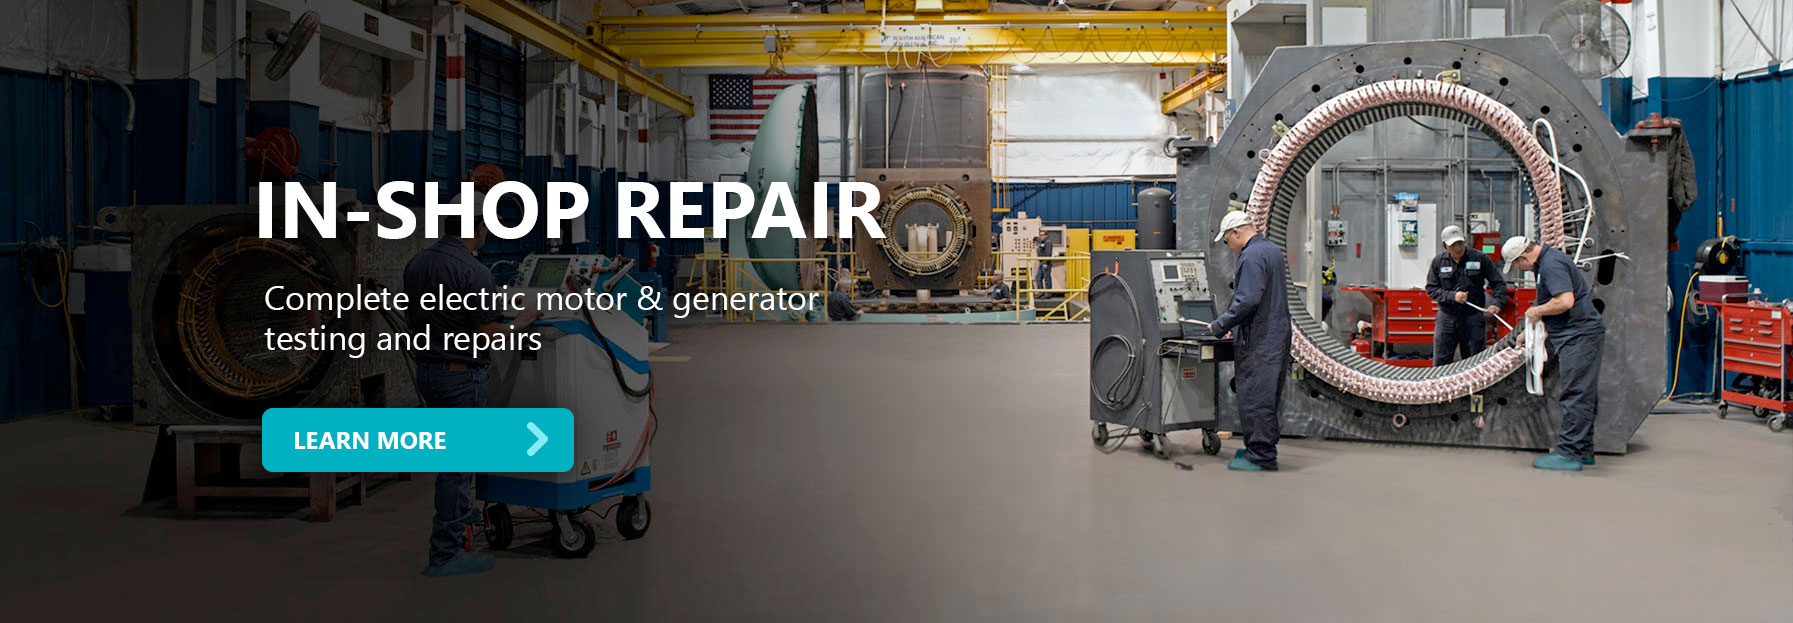 IPS In-shop electric motor and generator Repair